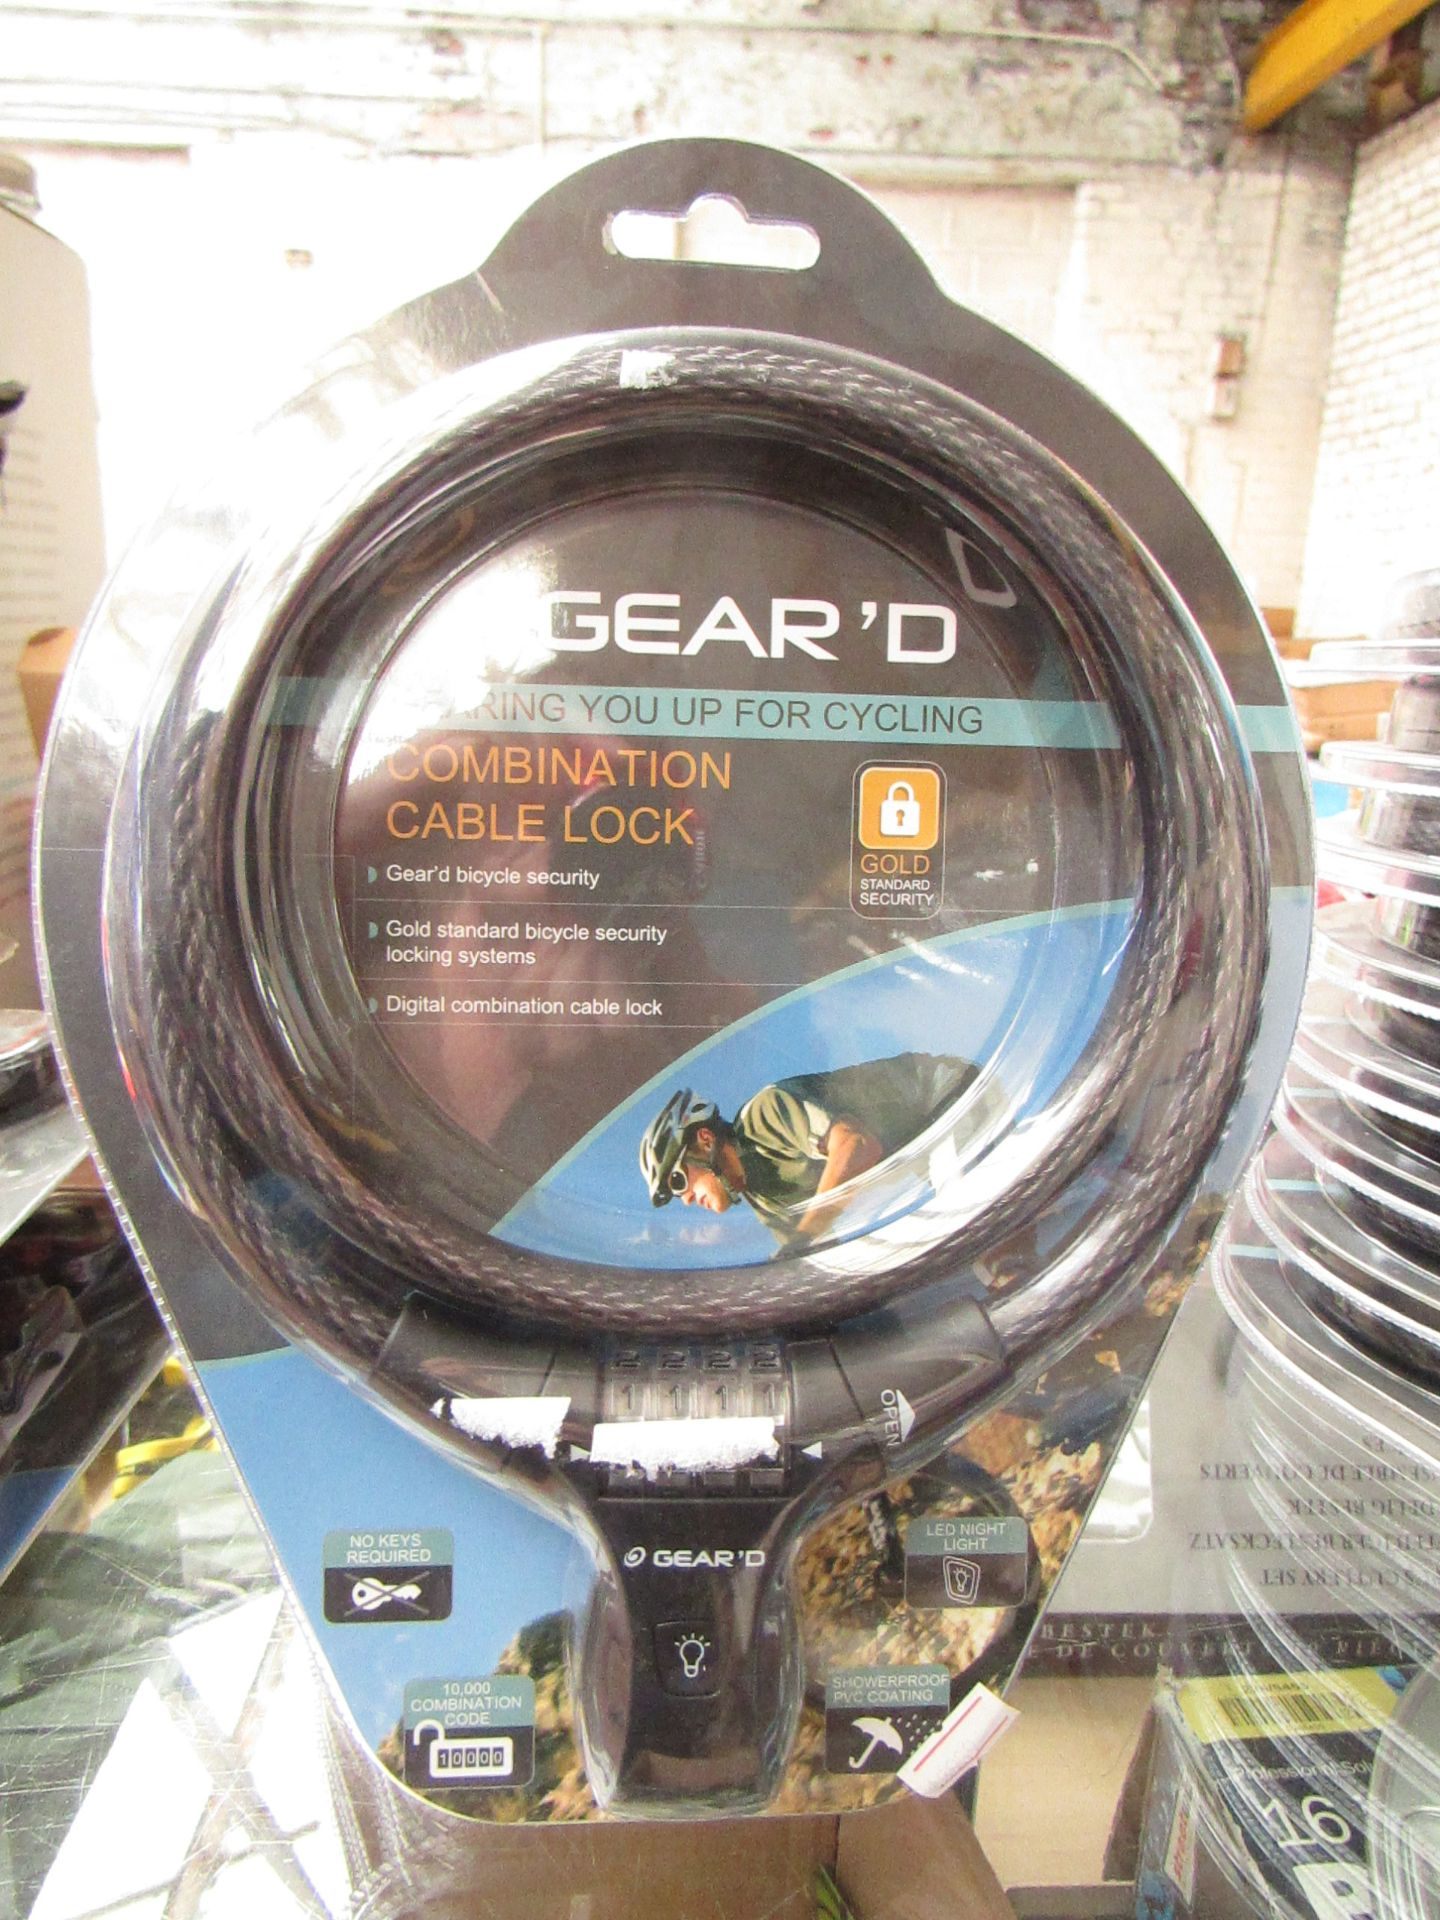 Lot 37 - 2 x Gear D Combination Cable Lock new & Packaged